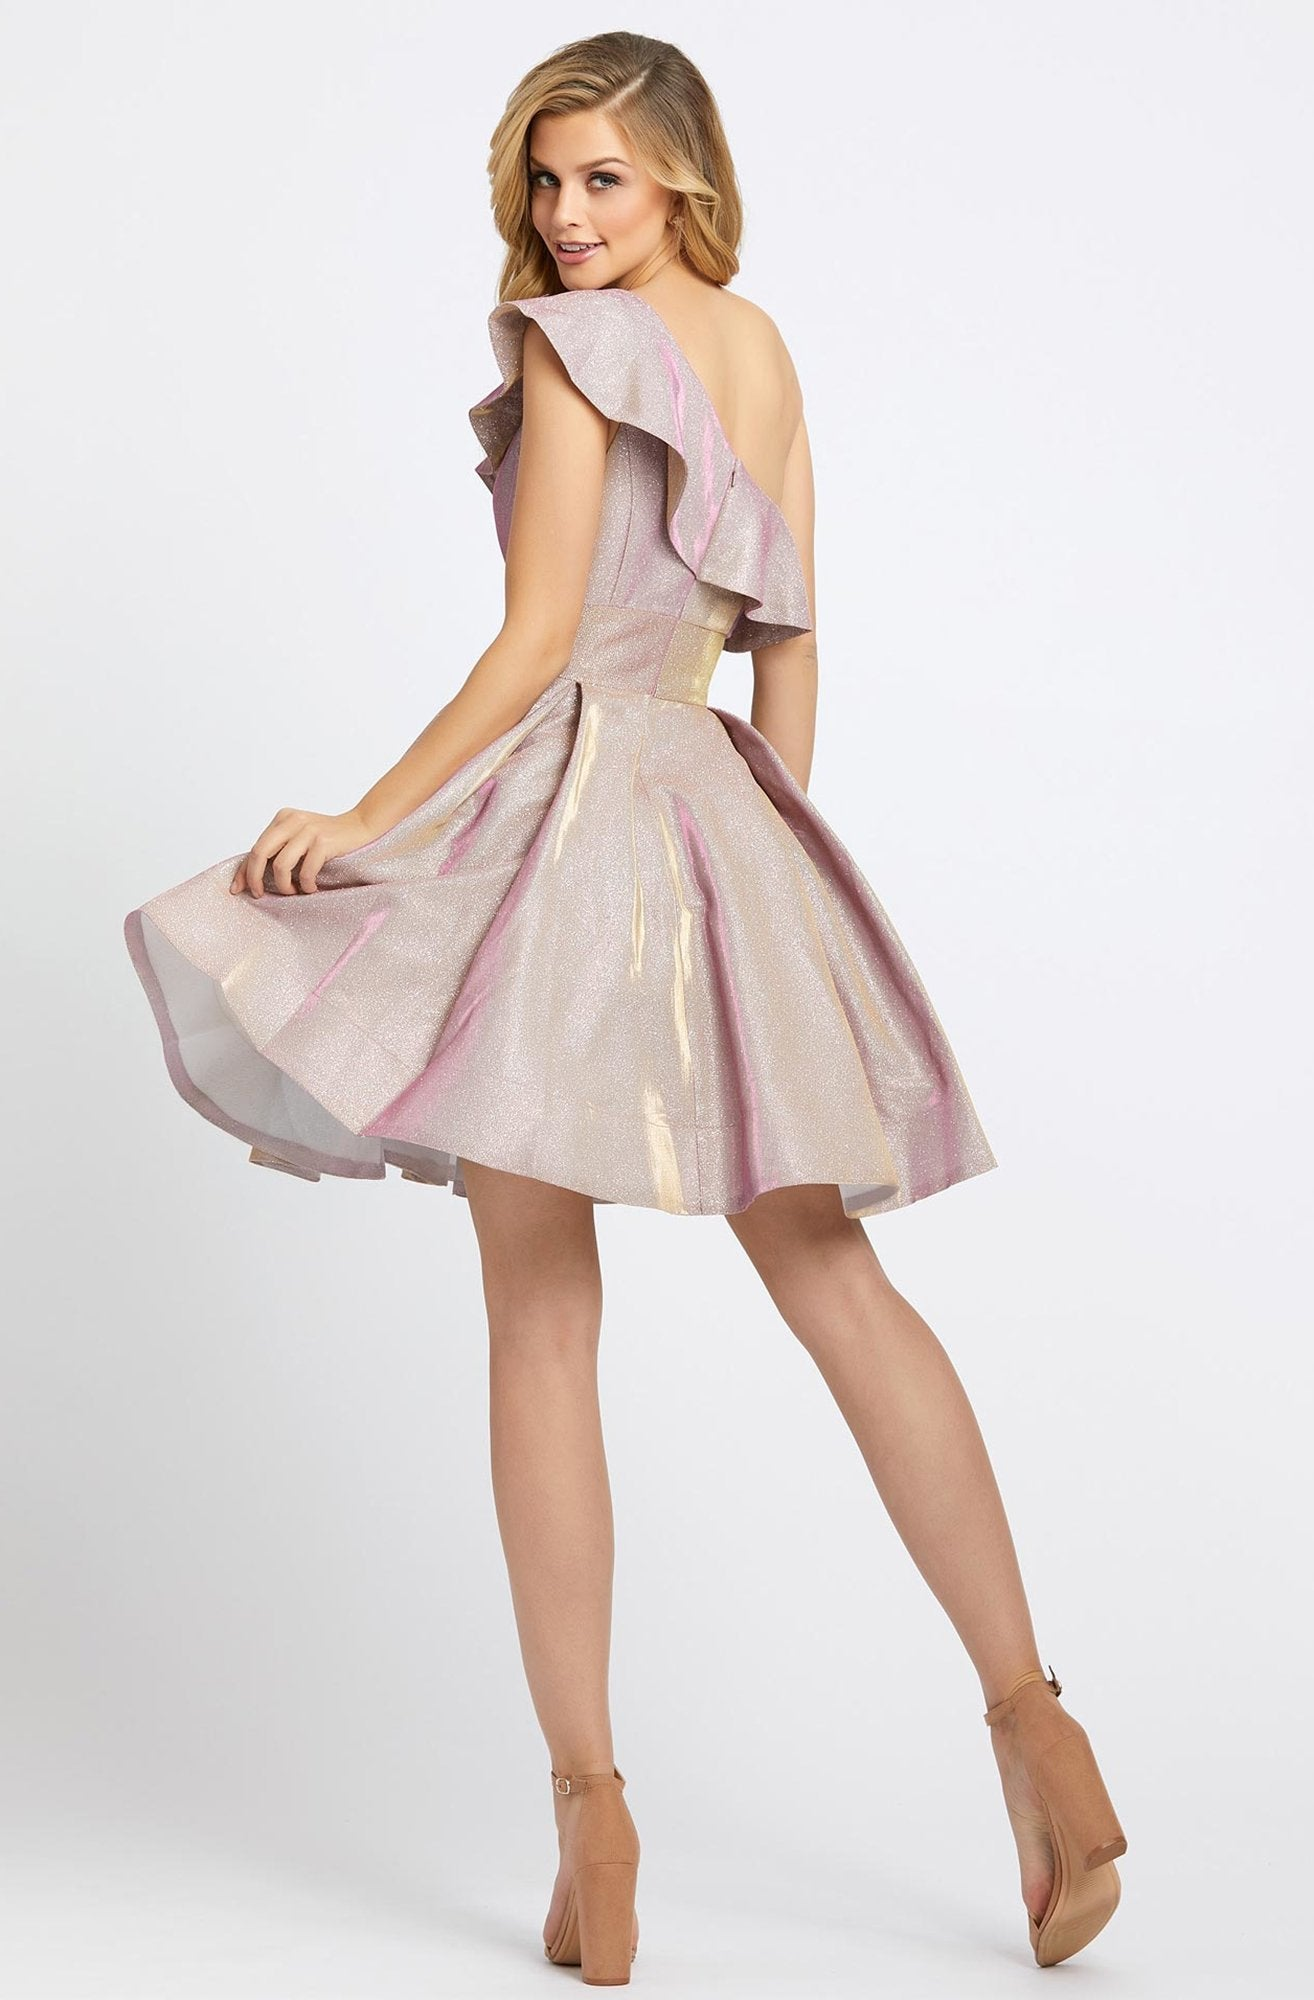 Ieena Duggal - 26097I Ruffled Asymmetrical A-Line Cocktail Dress In Pink